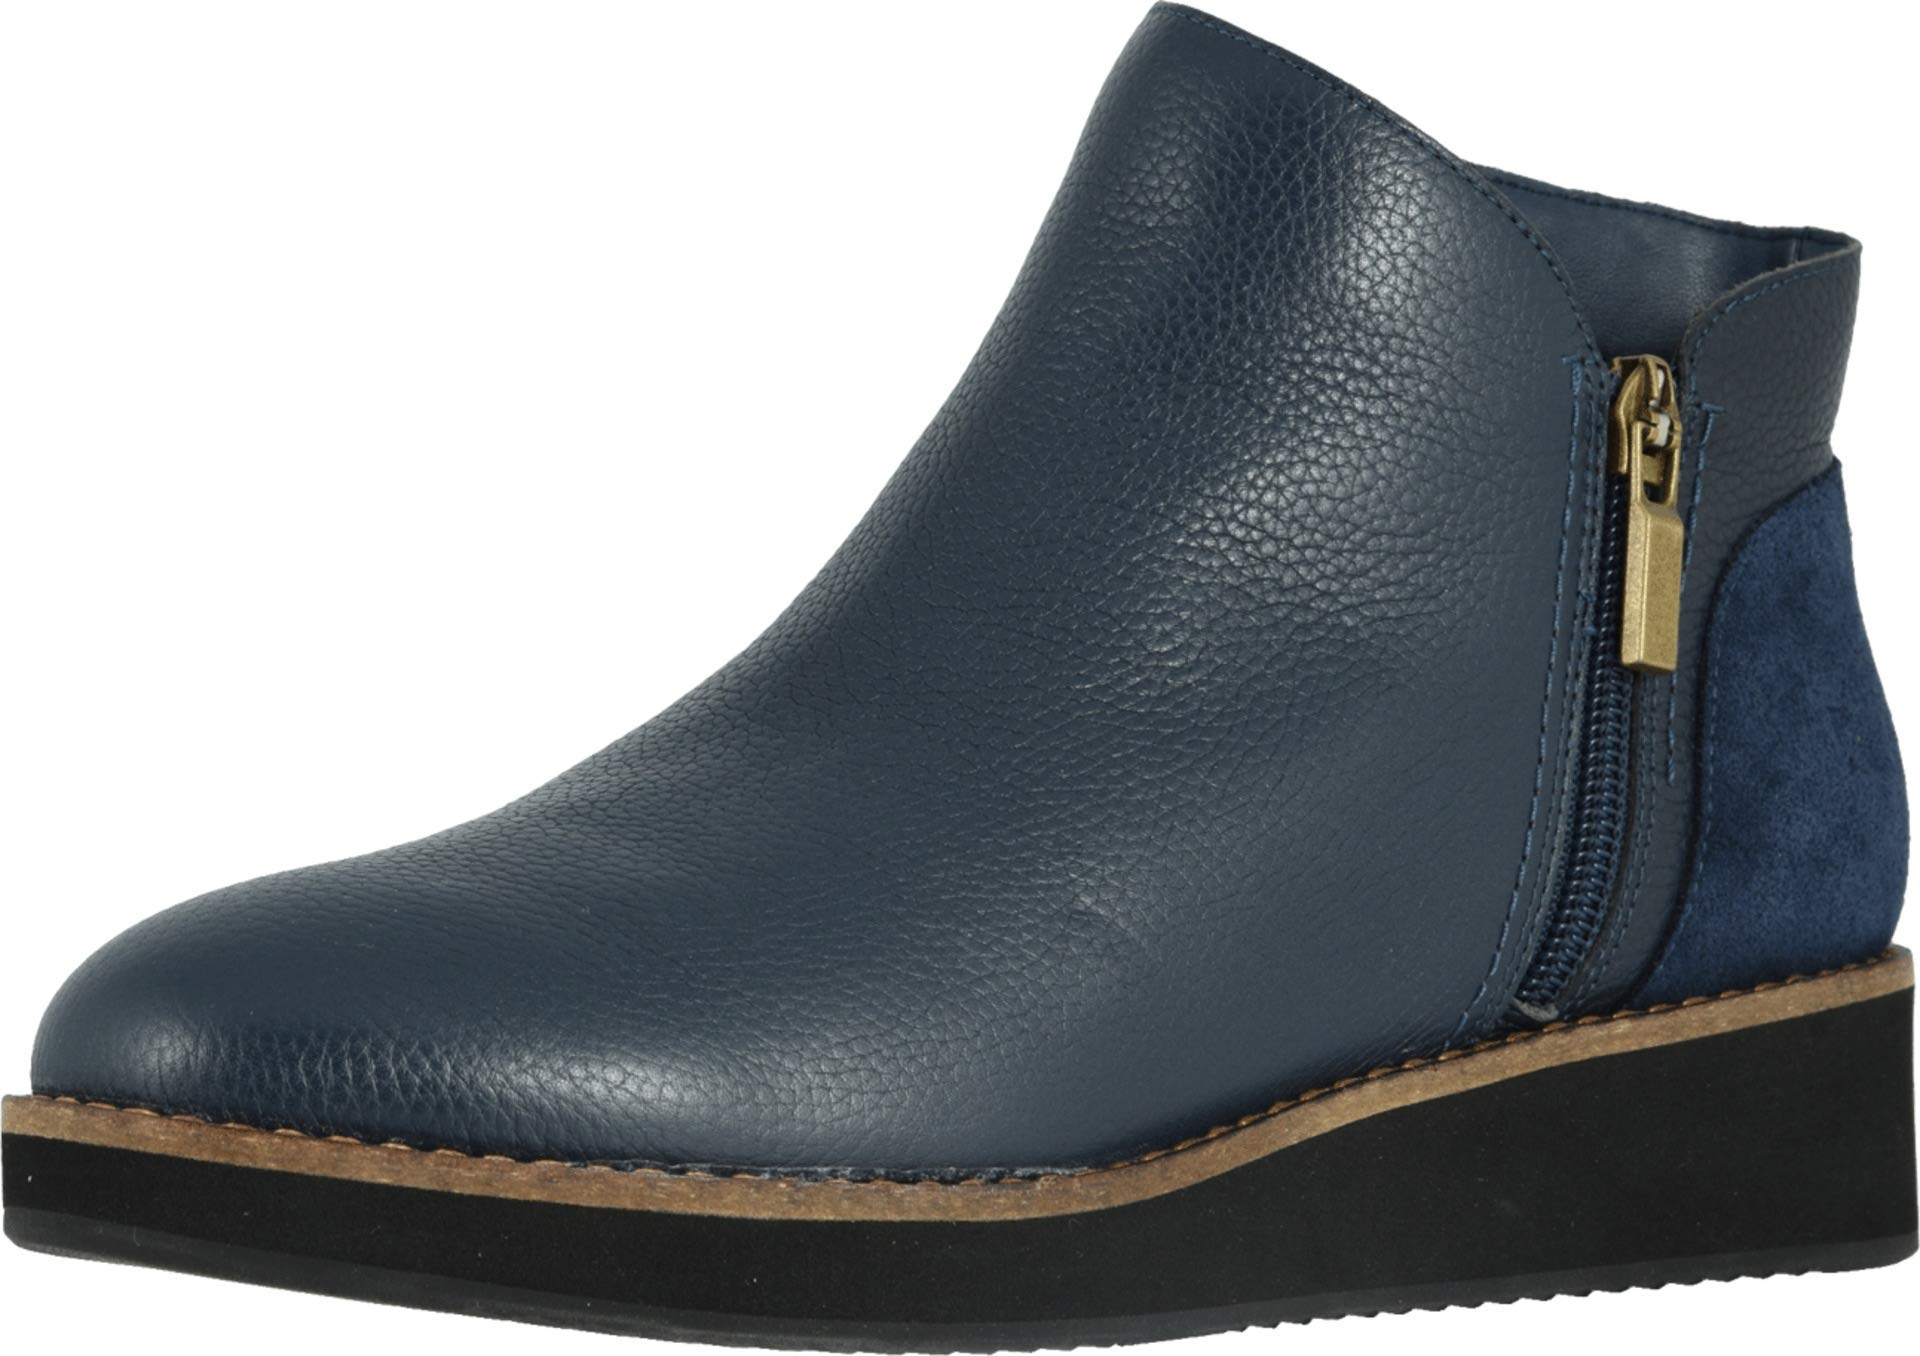 SoftWalk Women's Wesley Ankle Boot, Navy, 9.5 W US by SoftWalk